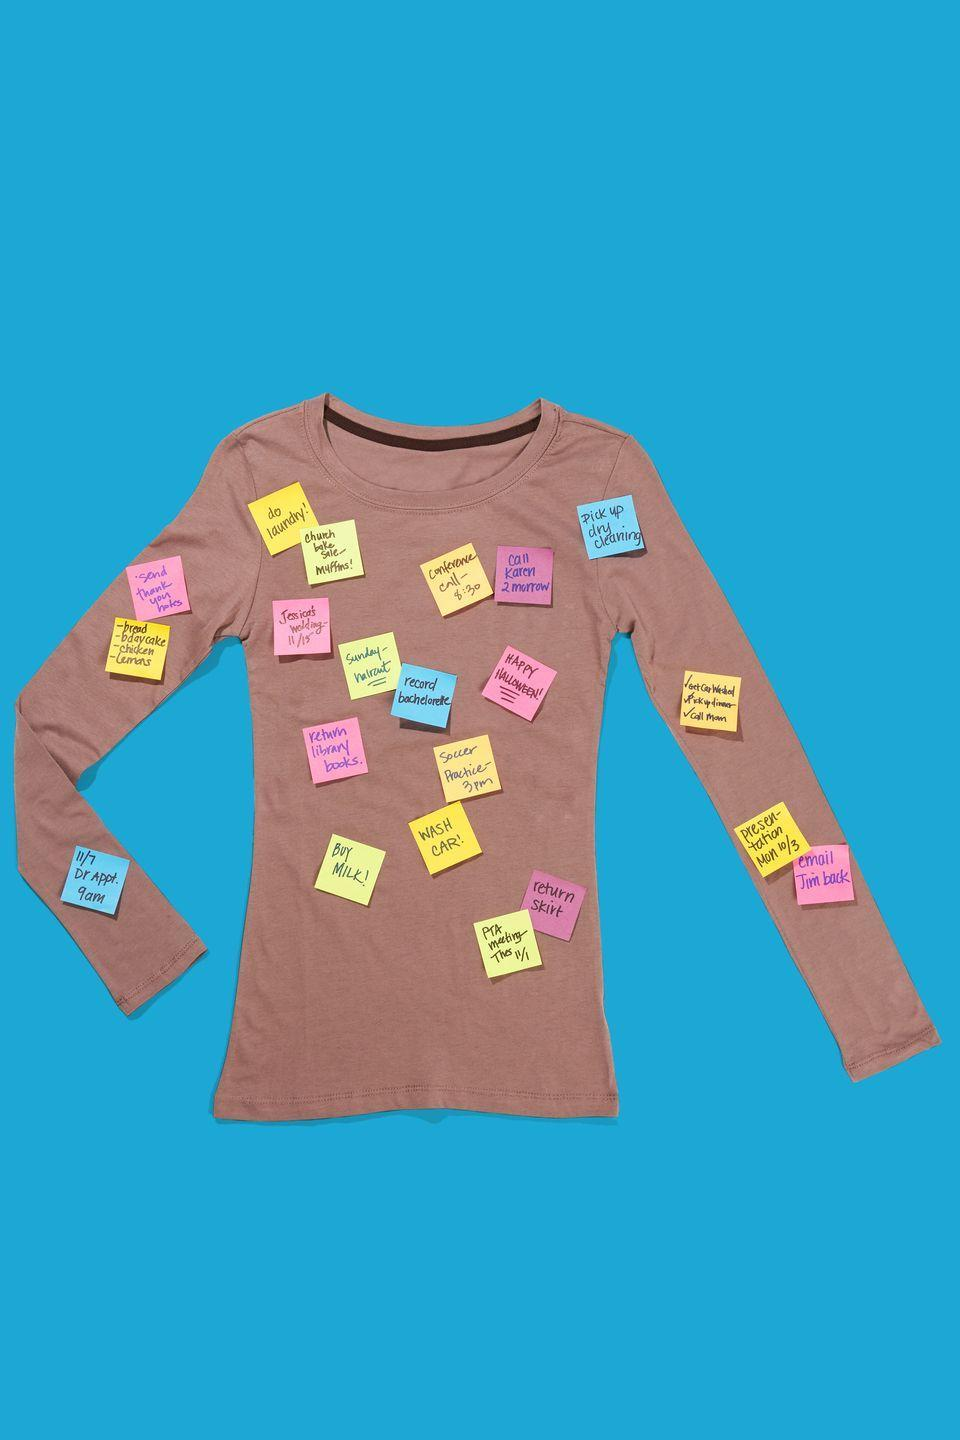 """<p>Dress in a brown t-shirt and stick Post-it notes filled with written reminders all over. Bring along an extra set of Post-its and a Sharpie so people can """"leave messages"""" as the night goes on. </p><p><strong><a class=""""link rapid-noclick-resp"""" href=""""https://www.amazon.com/OUGES-Womens-Sleeve-V-Neck-Button/dp/B087T97QFF/?tag=syn-yahoo-20&ascsubtag=%5Bartid%7C10070.g.490%5Bsrc%7Cyahoo-us"""" rel=""""nofollow noopener"""" target=""""_blank"""" data-ylk=""""slk:SHOP BROWN SHIRTS"""">SHOP BROWN SHIRTS</a></strong></p>"""